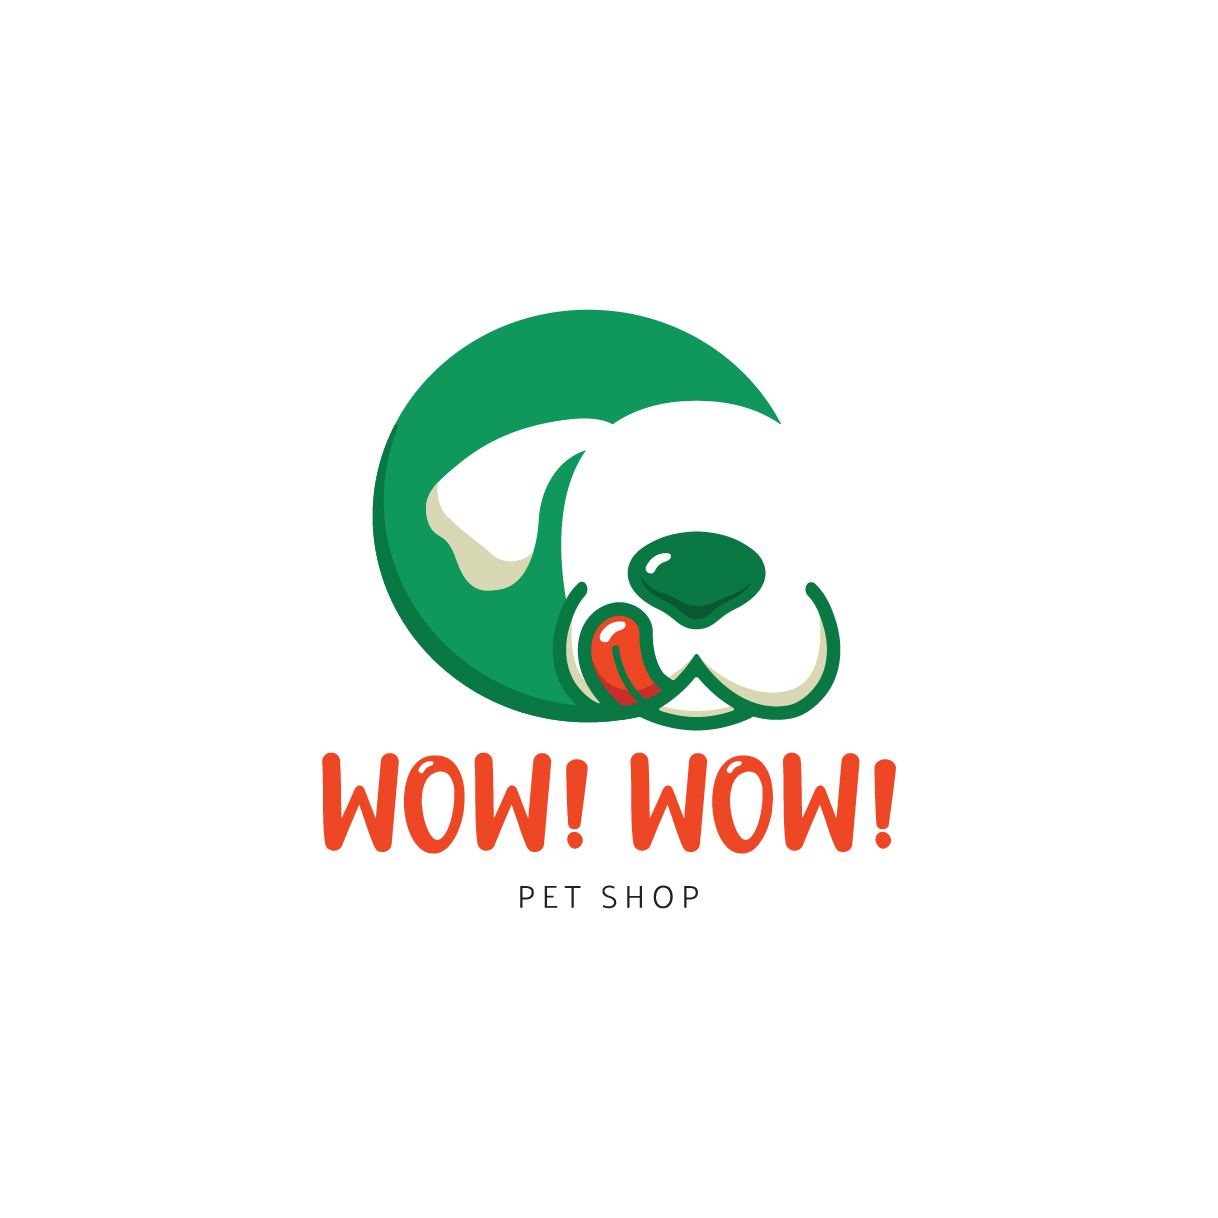 WOW! WOW! Pet Shop